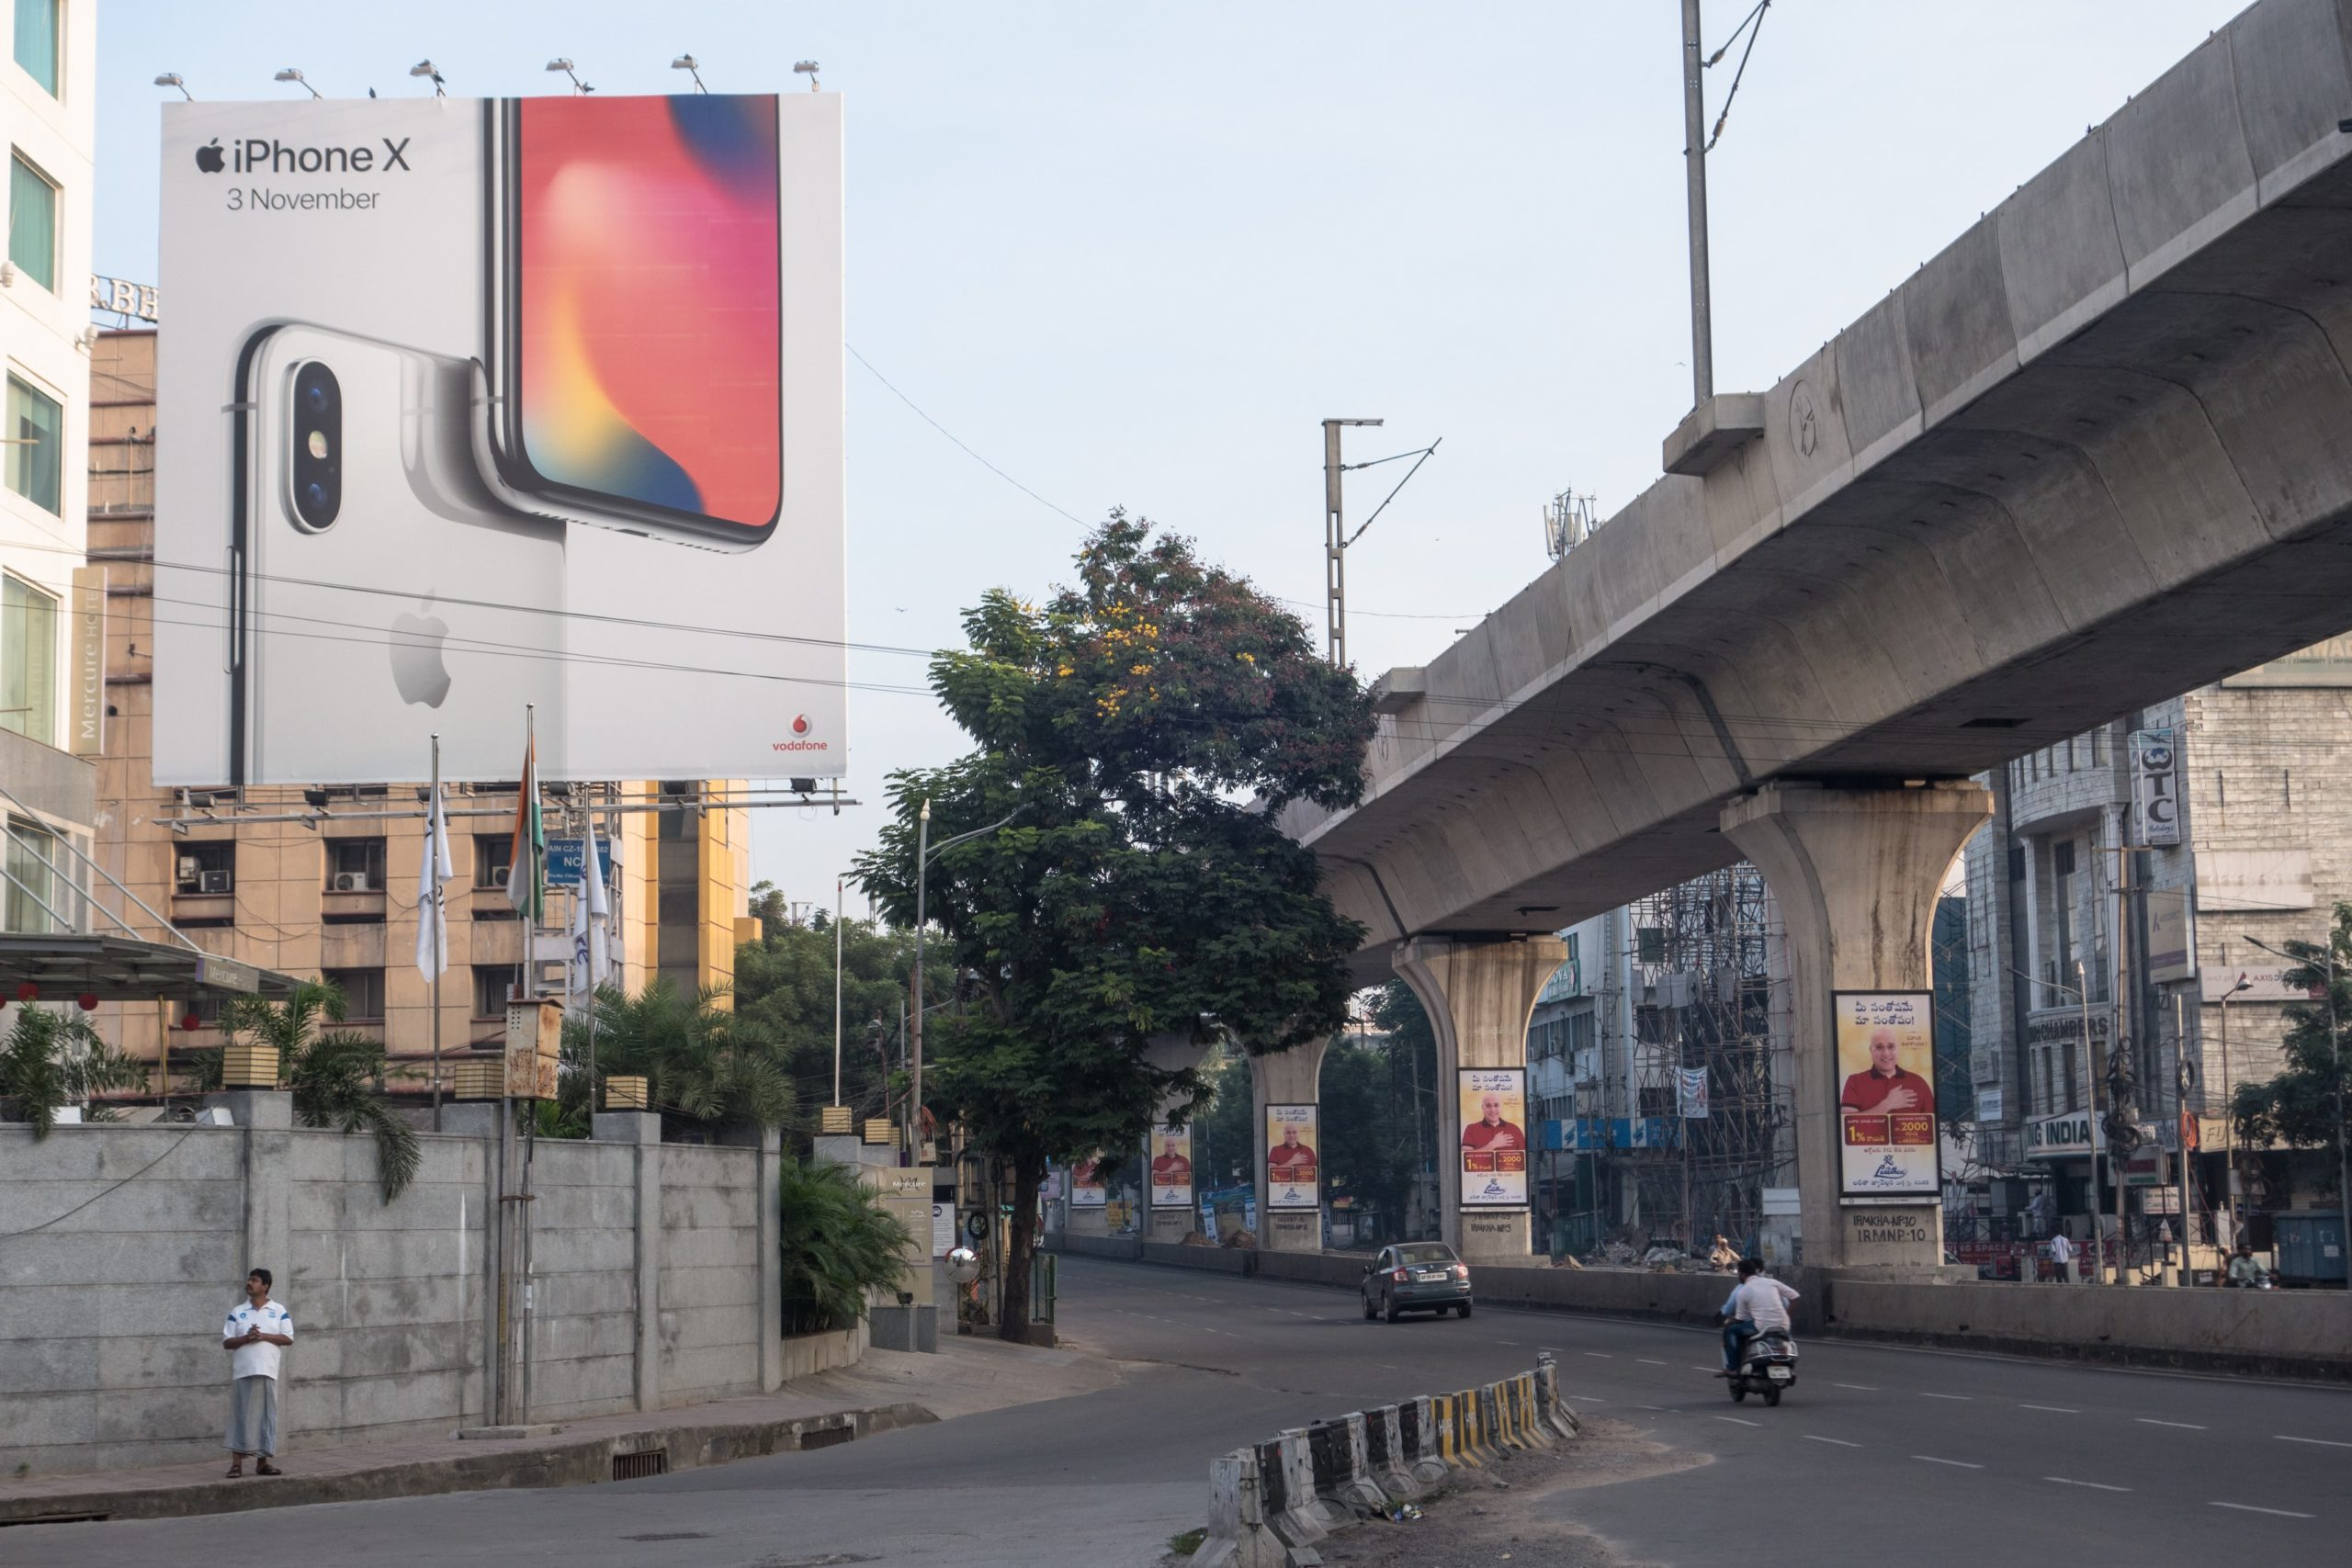 Propaganda do iPhone X na Índia